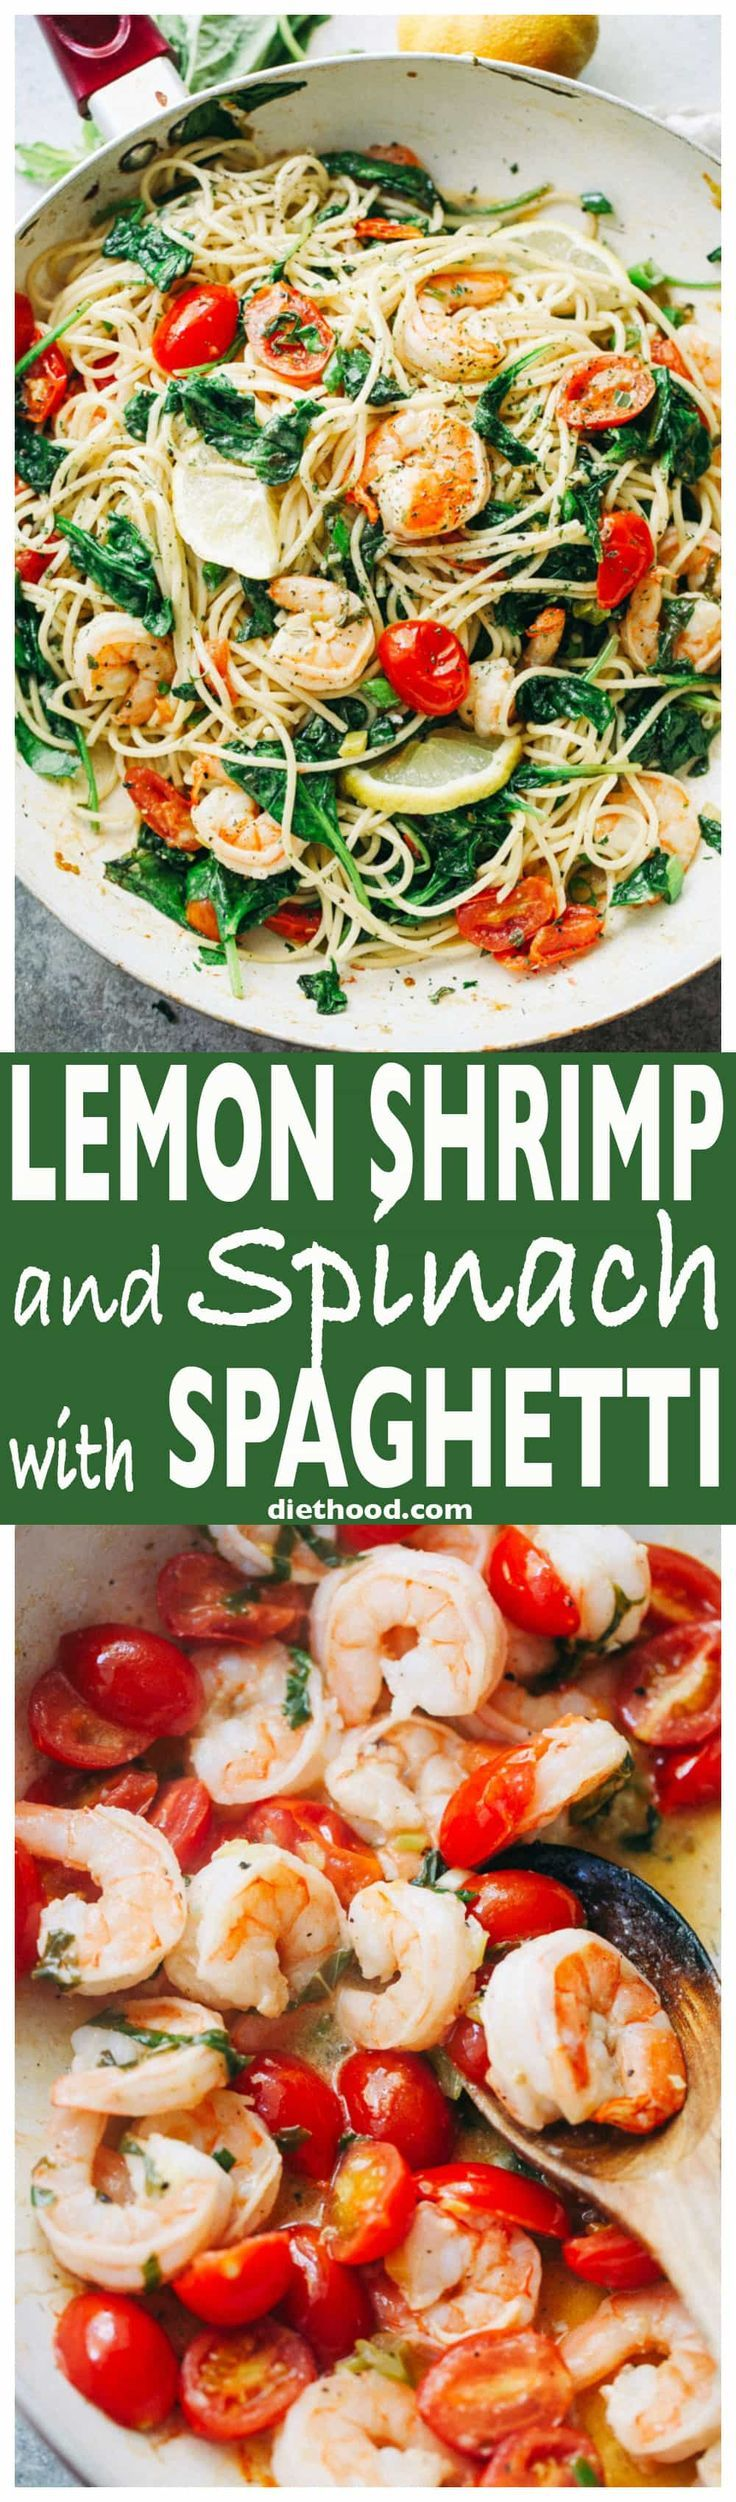 Lemon Shrimp and Spinach with Spaghetti -A quick and absolutely delicious spaghetti dinner tossed with shrimp, spinach, tomatoes, garlic, and lemon juice. via @diethood